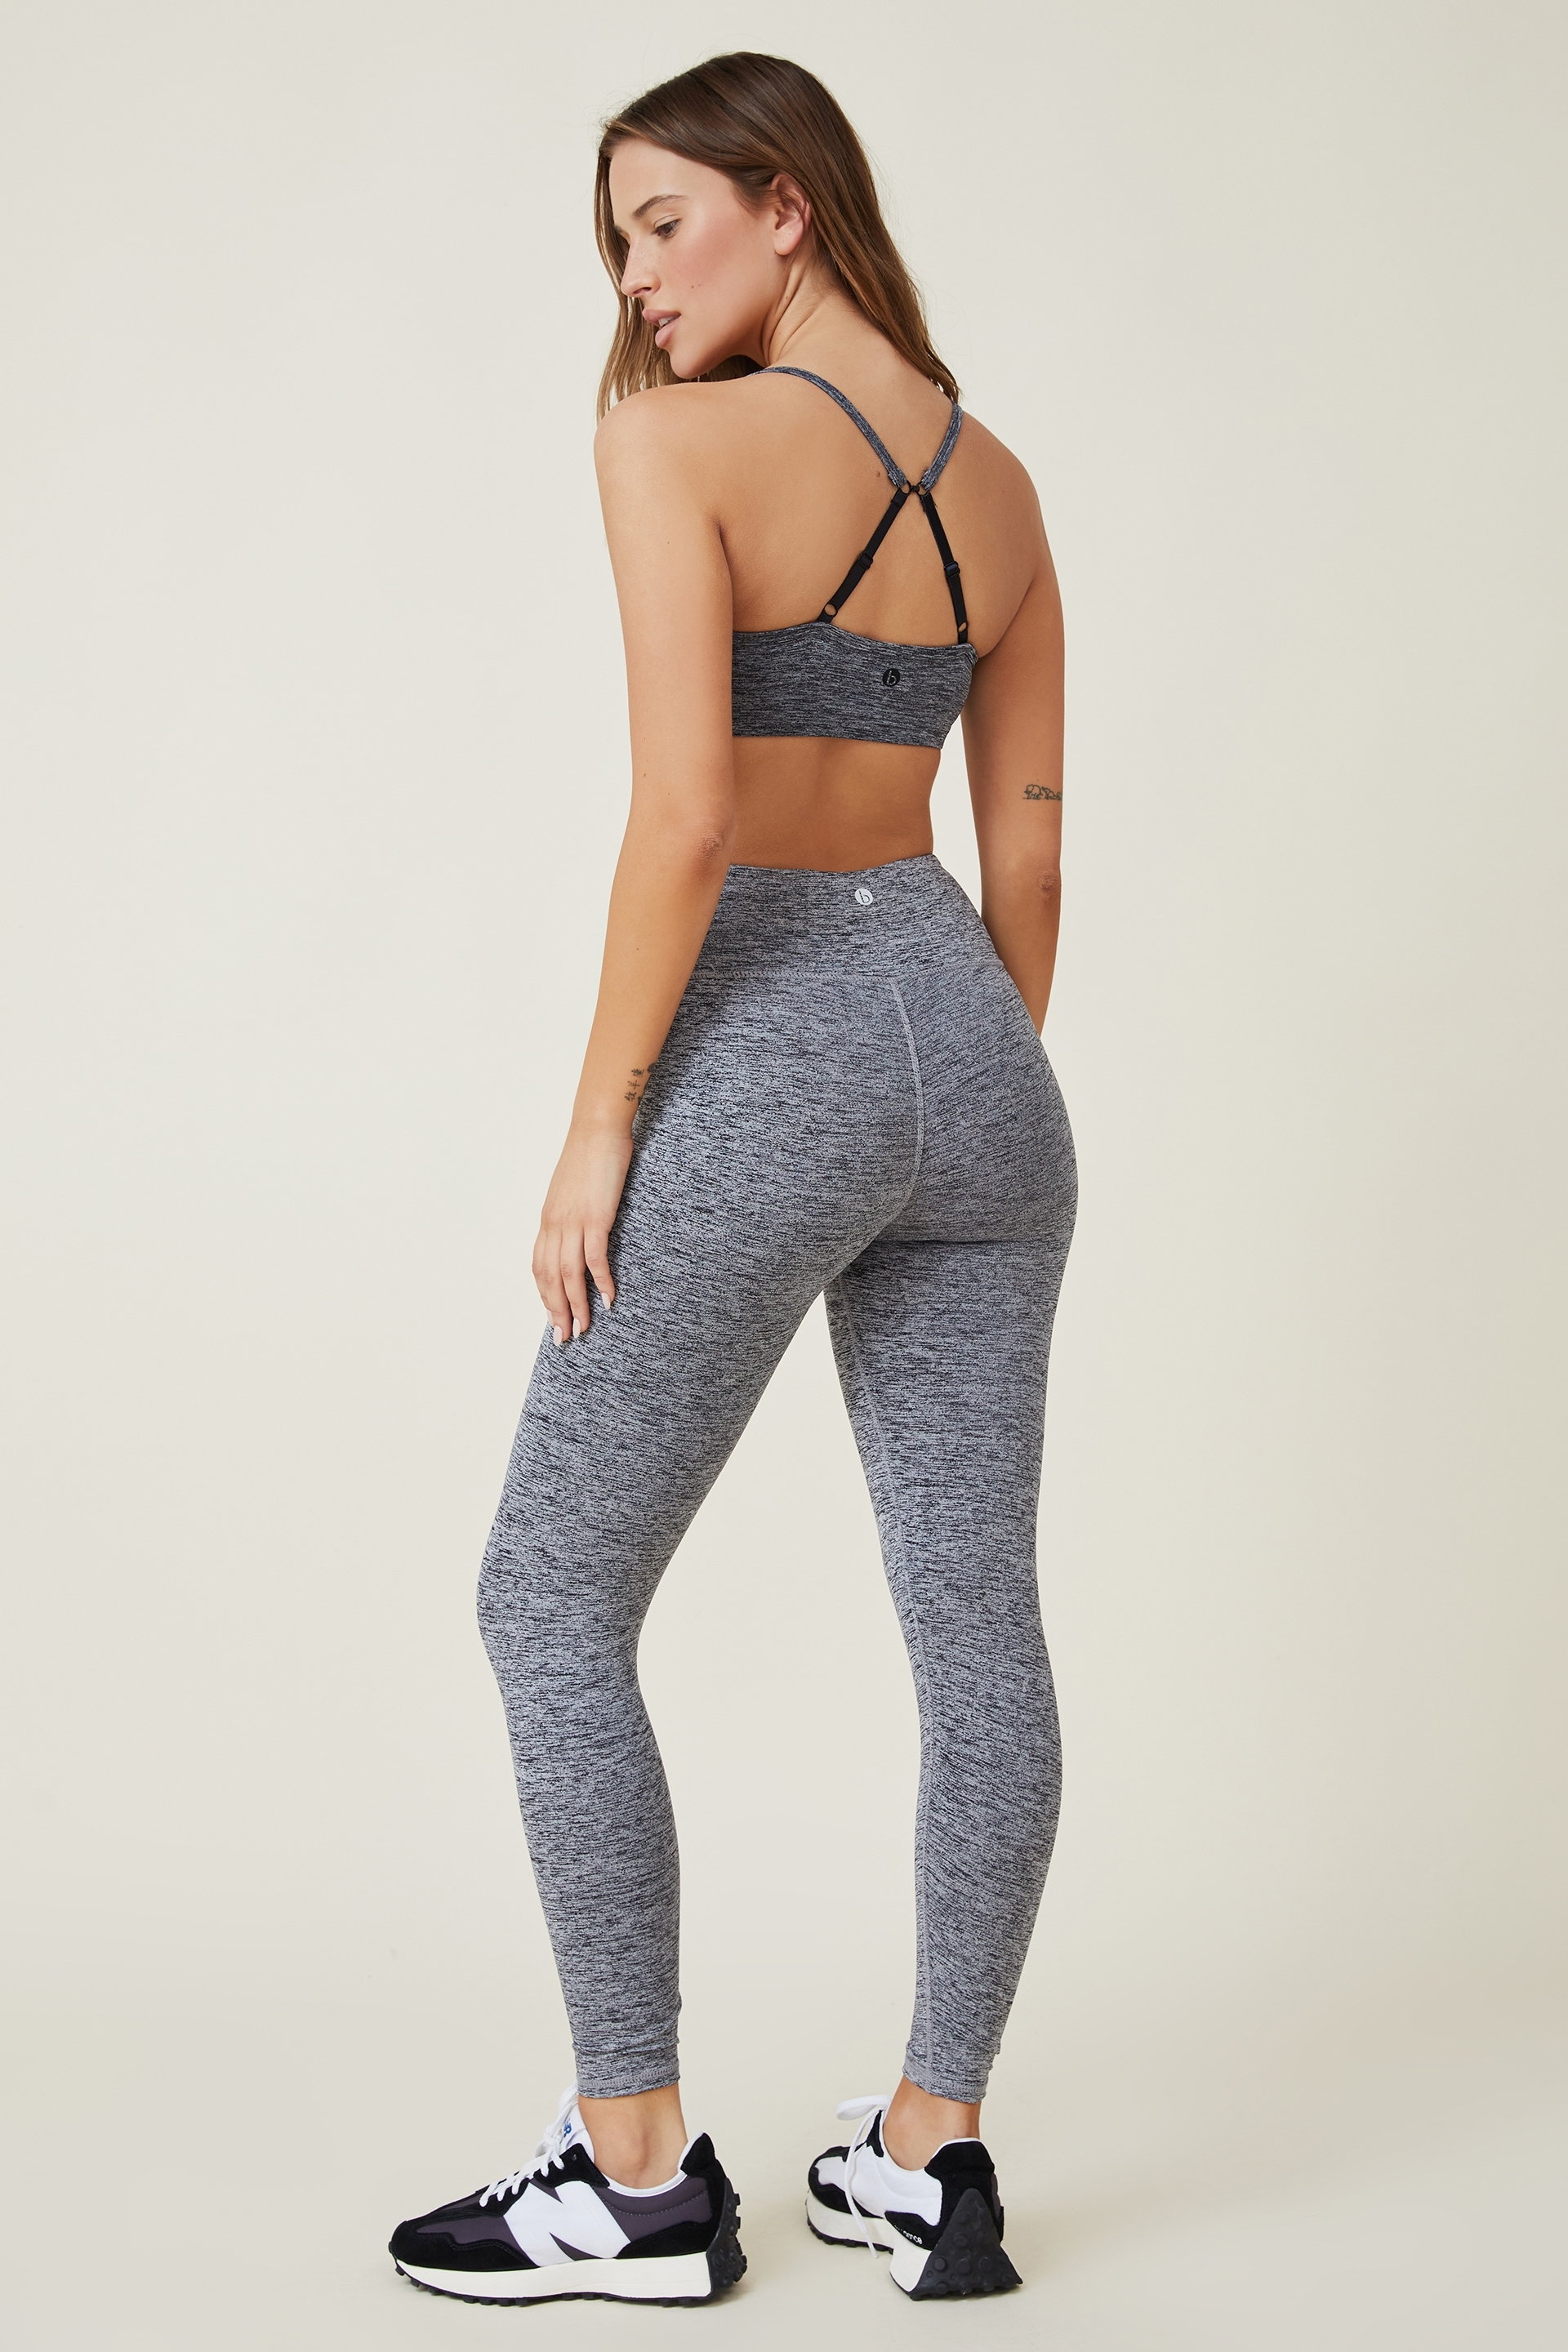 The Active Core 7/8 Tight has a wide stretch double layered waistband and firmly hugs the body. These high waist active tights ensure maximum comfort while you workout, with moisture wicking fabric treatment that will keep you cool and dry. The ultimate staple for your active wardrobe. Available in black, grey and navy. - Firmly hugs the body - High waist - Above the ankle length - Wide stretch and double layer waistband with coin pocket - Moisture wicking fabric - Flatlock stitching SOLID: 88% POLYAMIDE / 12% ELASTANE MARLE: 44% POLYAMIDE / 44% POLYESTER / 12% ELASTANE MODEL WEARS SIZE: SMALL - AU 10 US 6 EUR 38